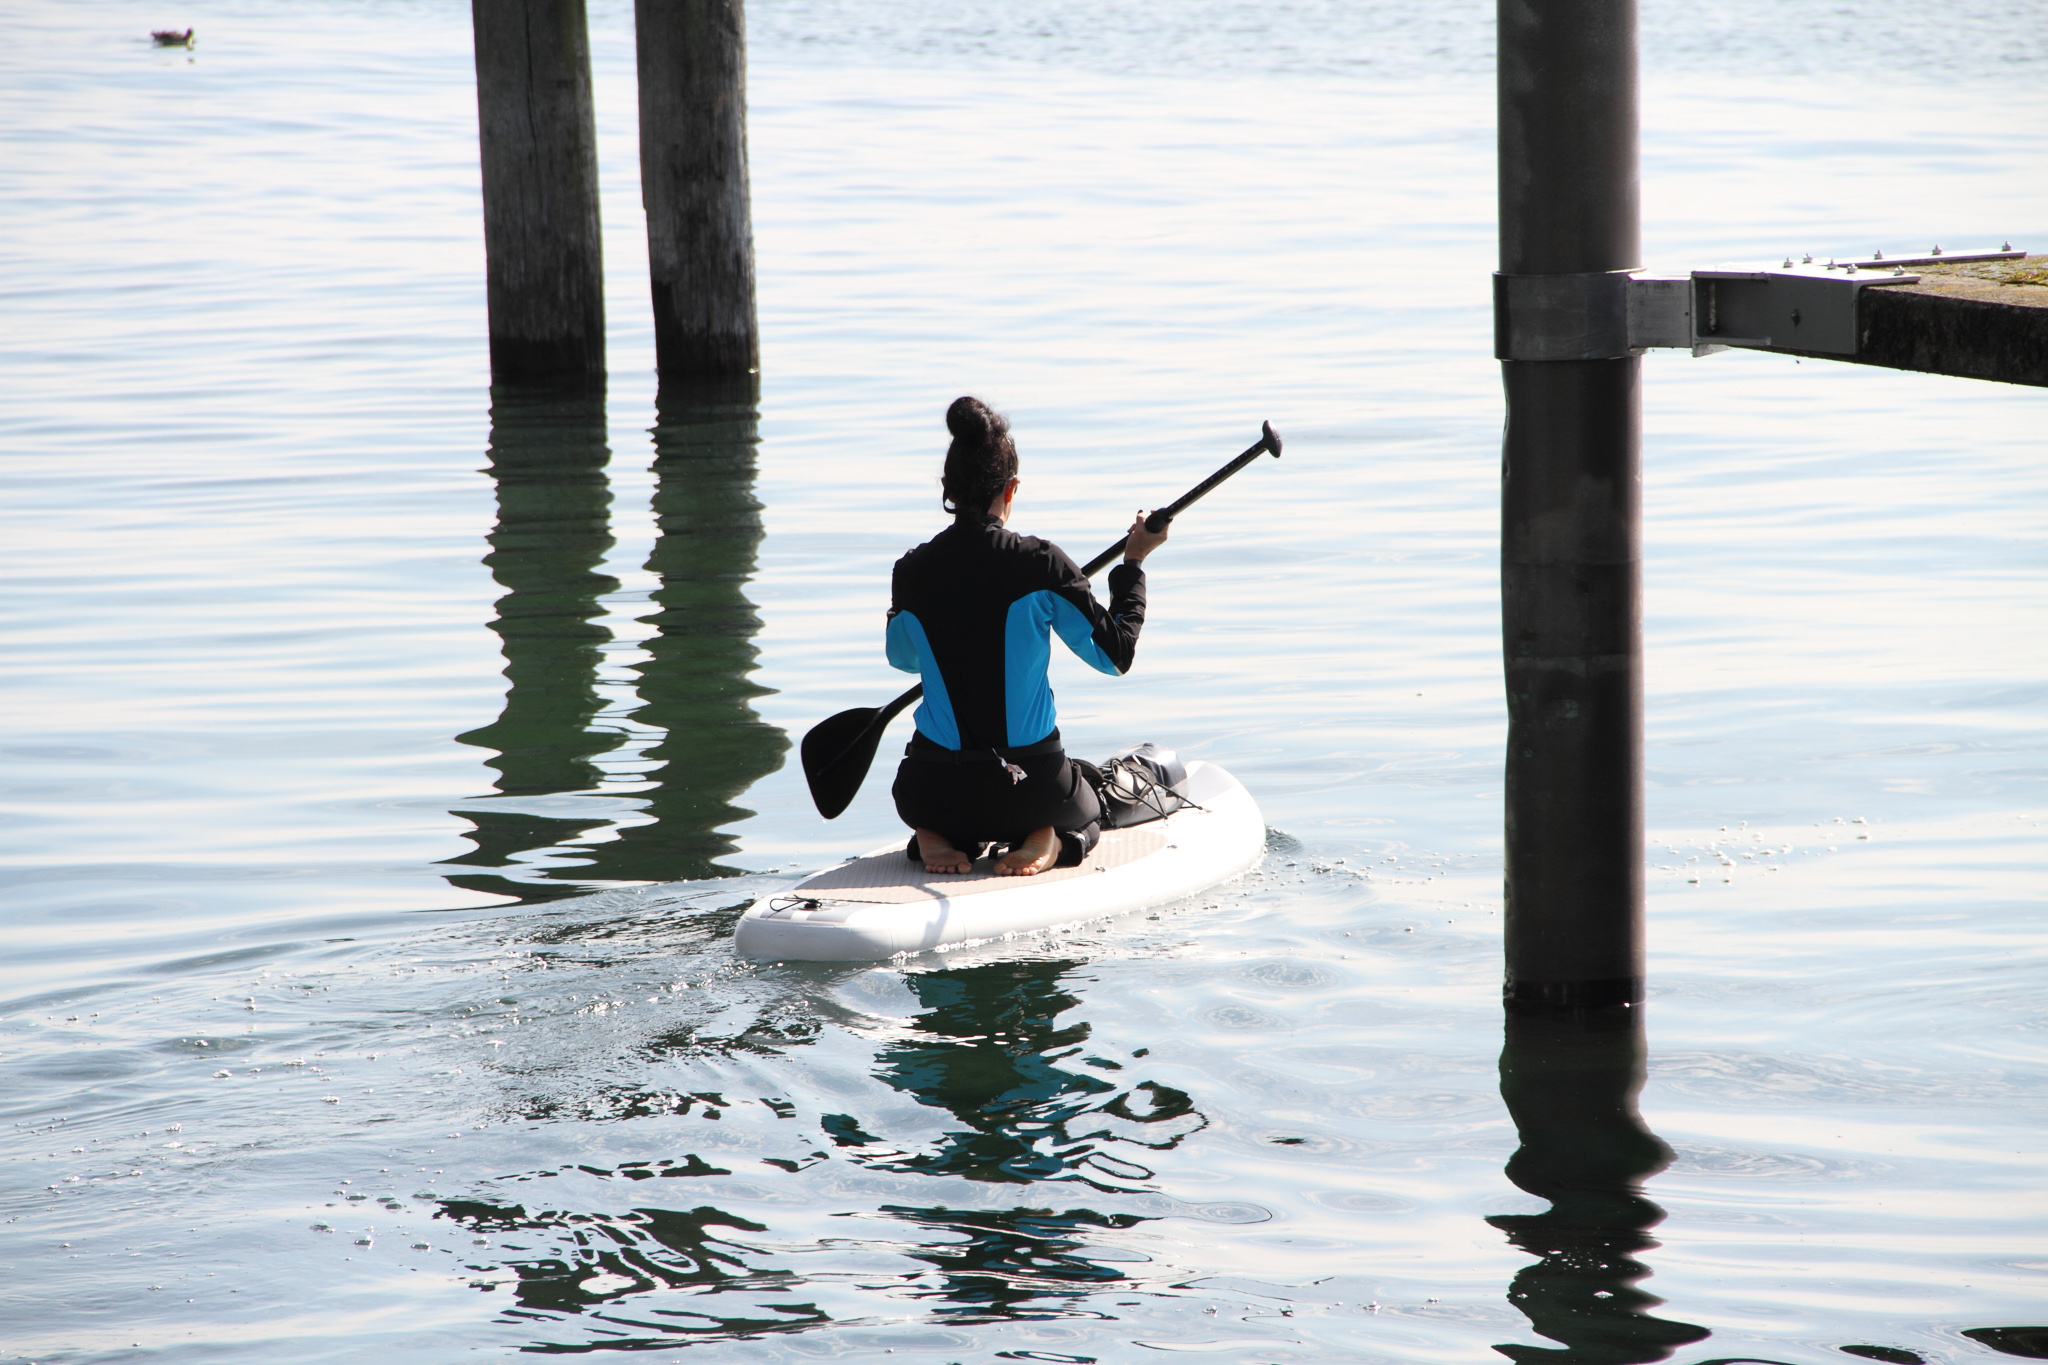 The picture shows a women on a paddle board